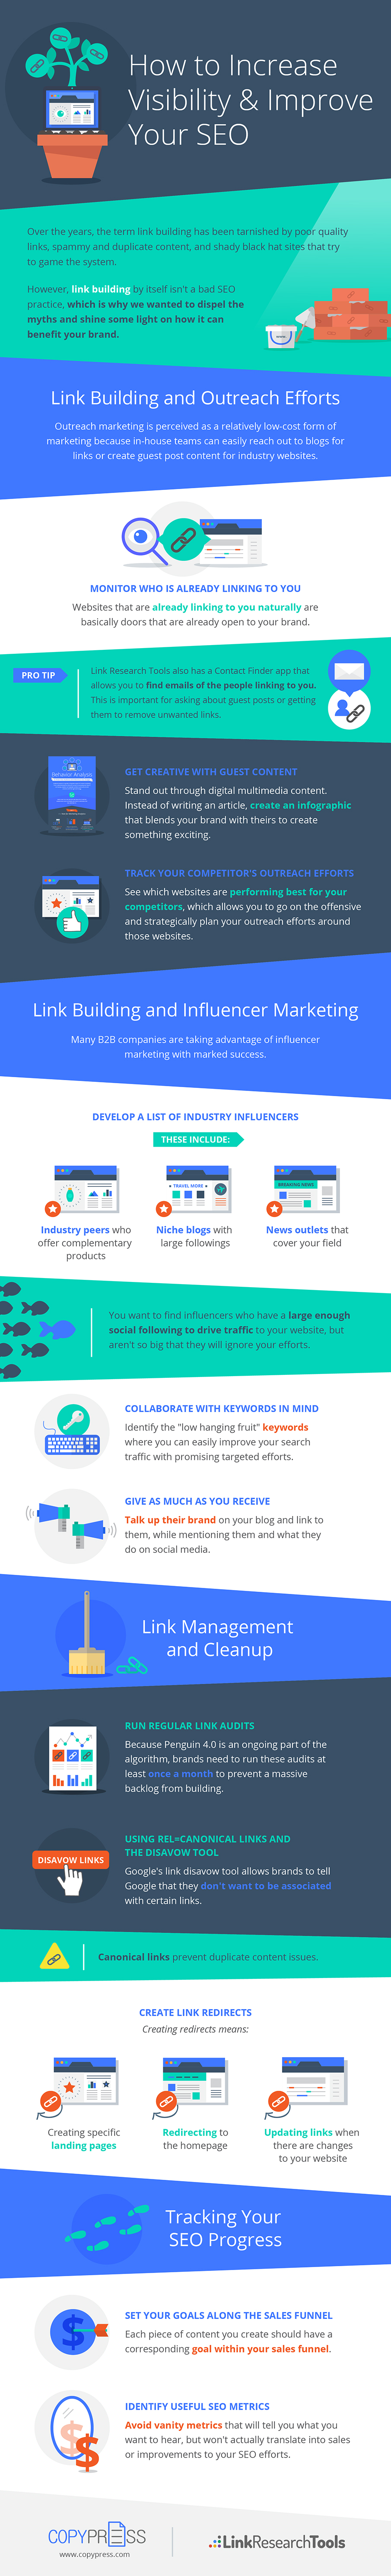 improve visibility with seo infographic